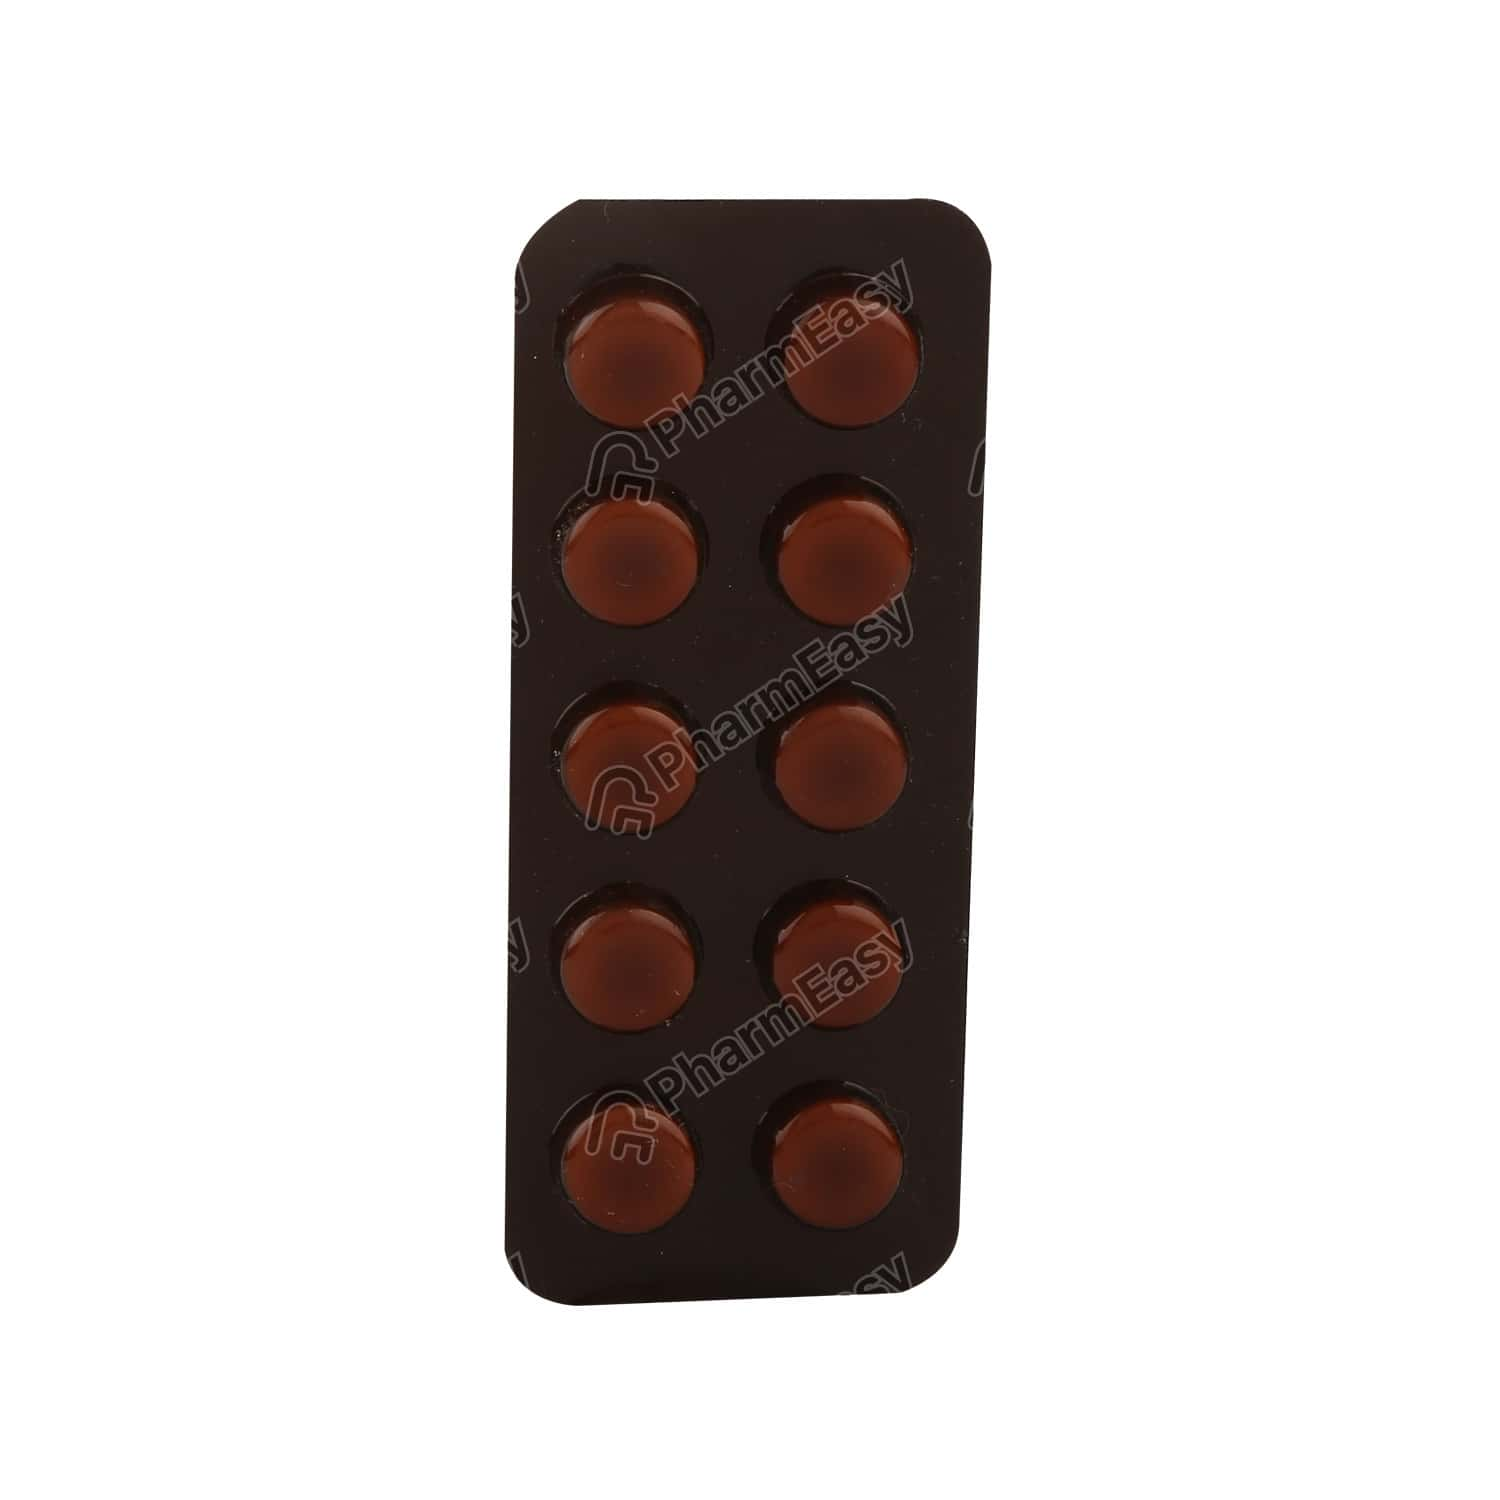 Winpres H Strip Of 10 Tablets